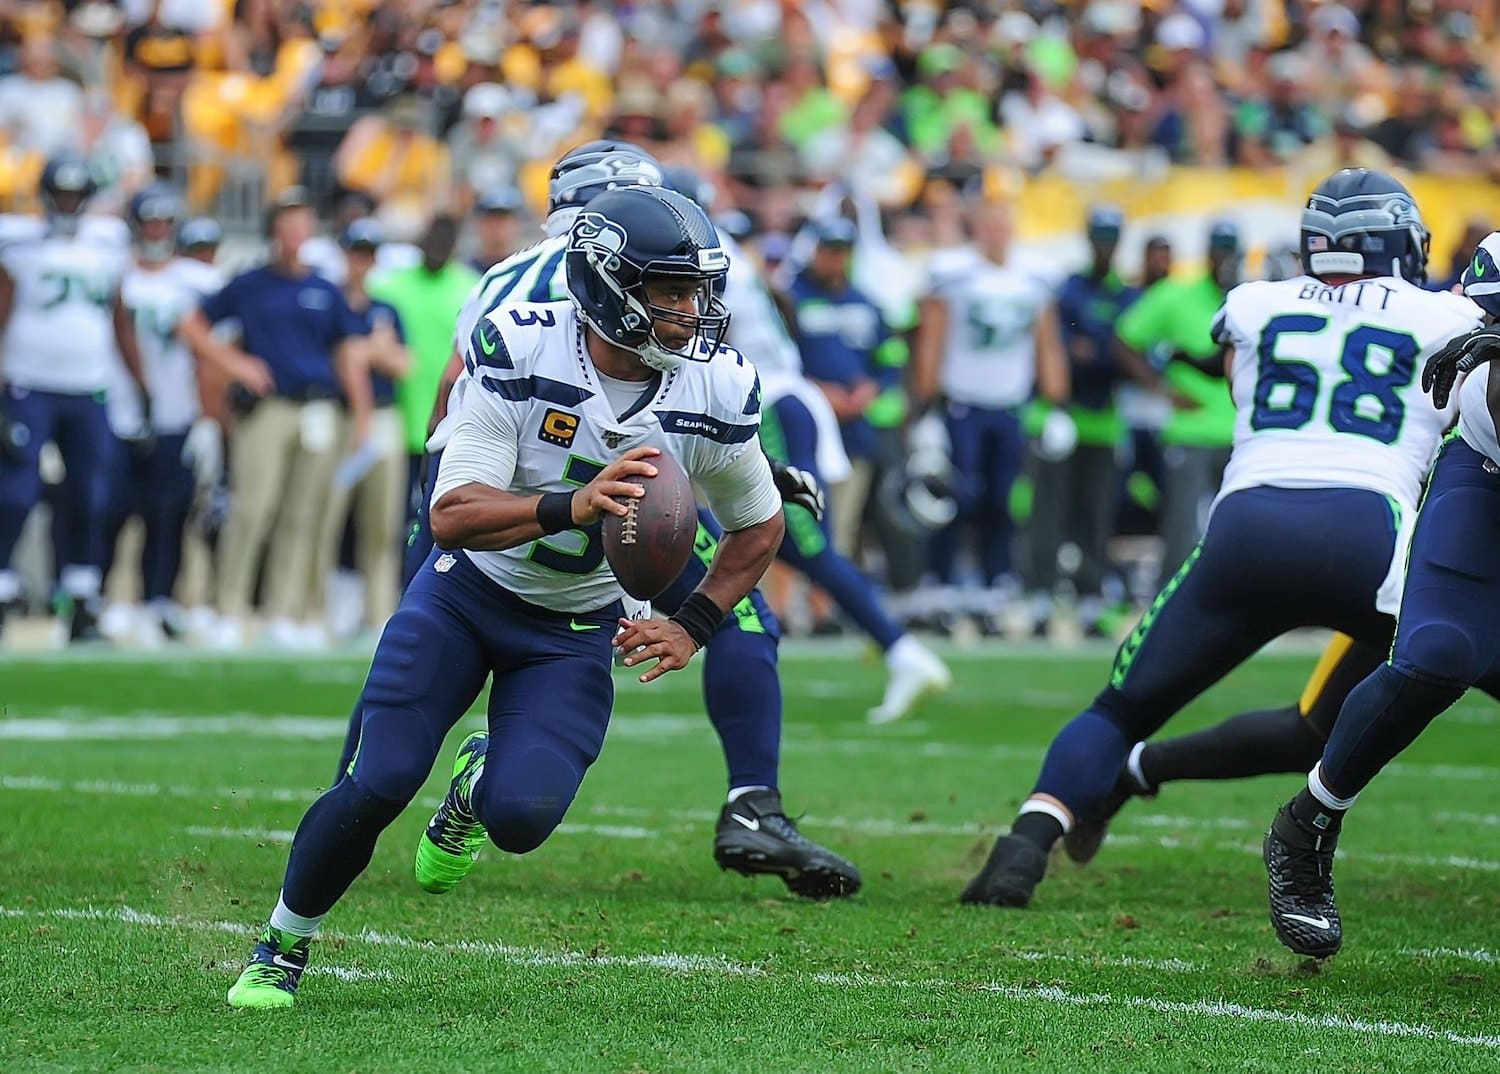 NFL Week 6 Parlay Bets: 3 Best Parlays That Will Make You Money